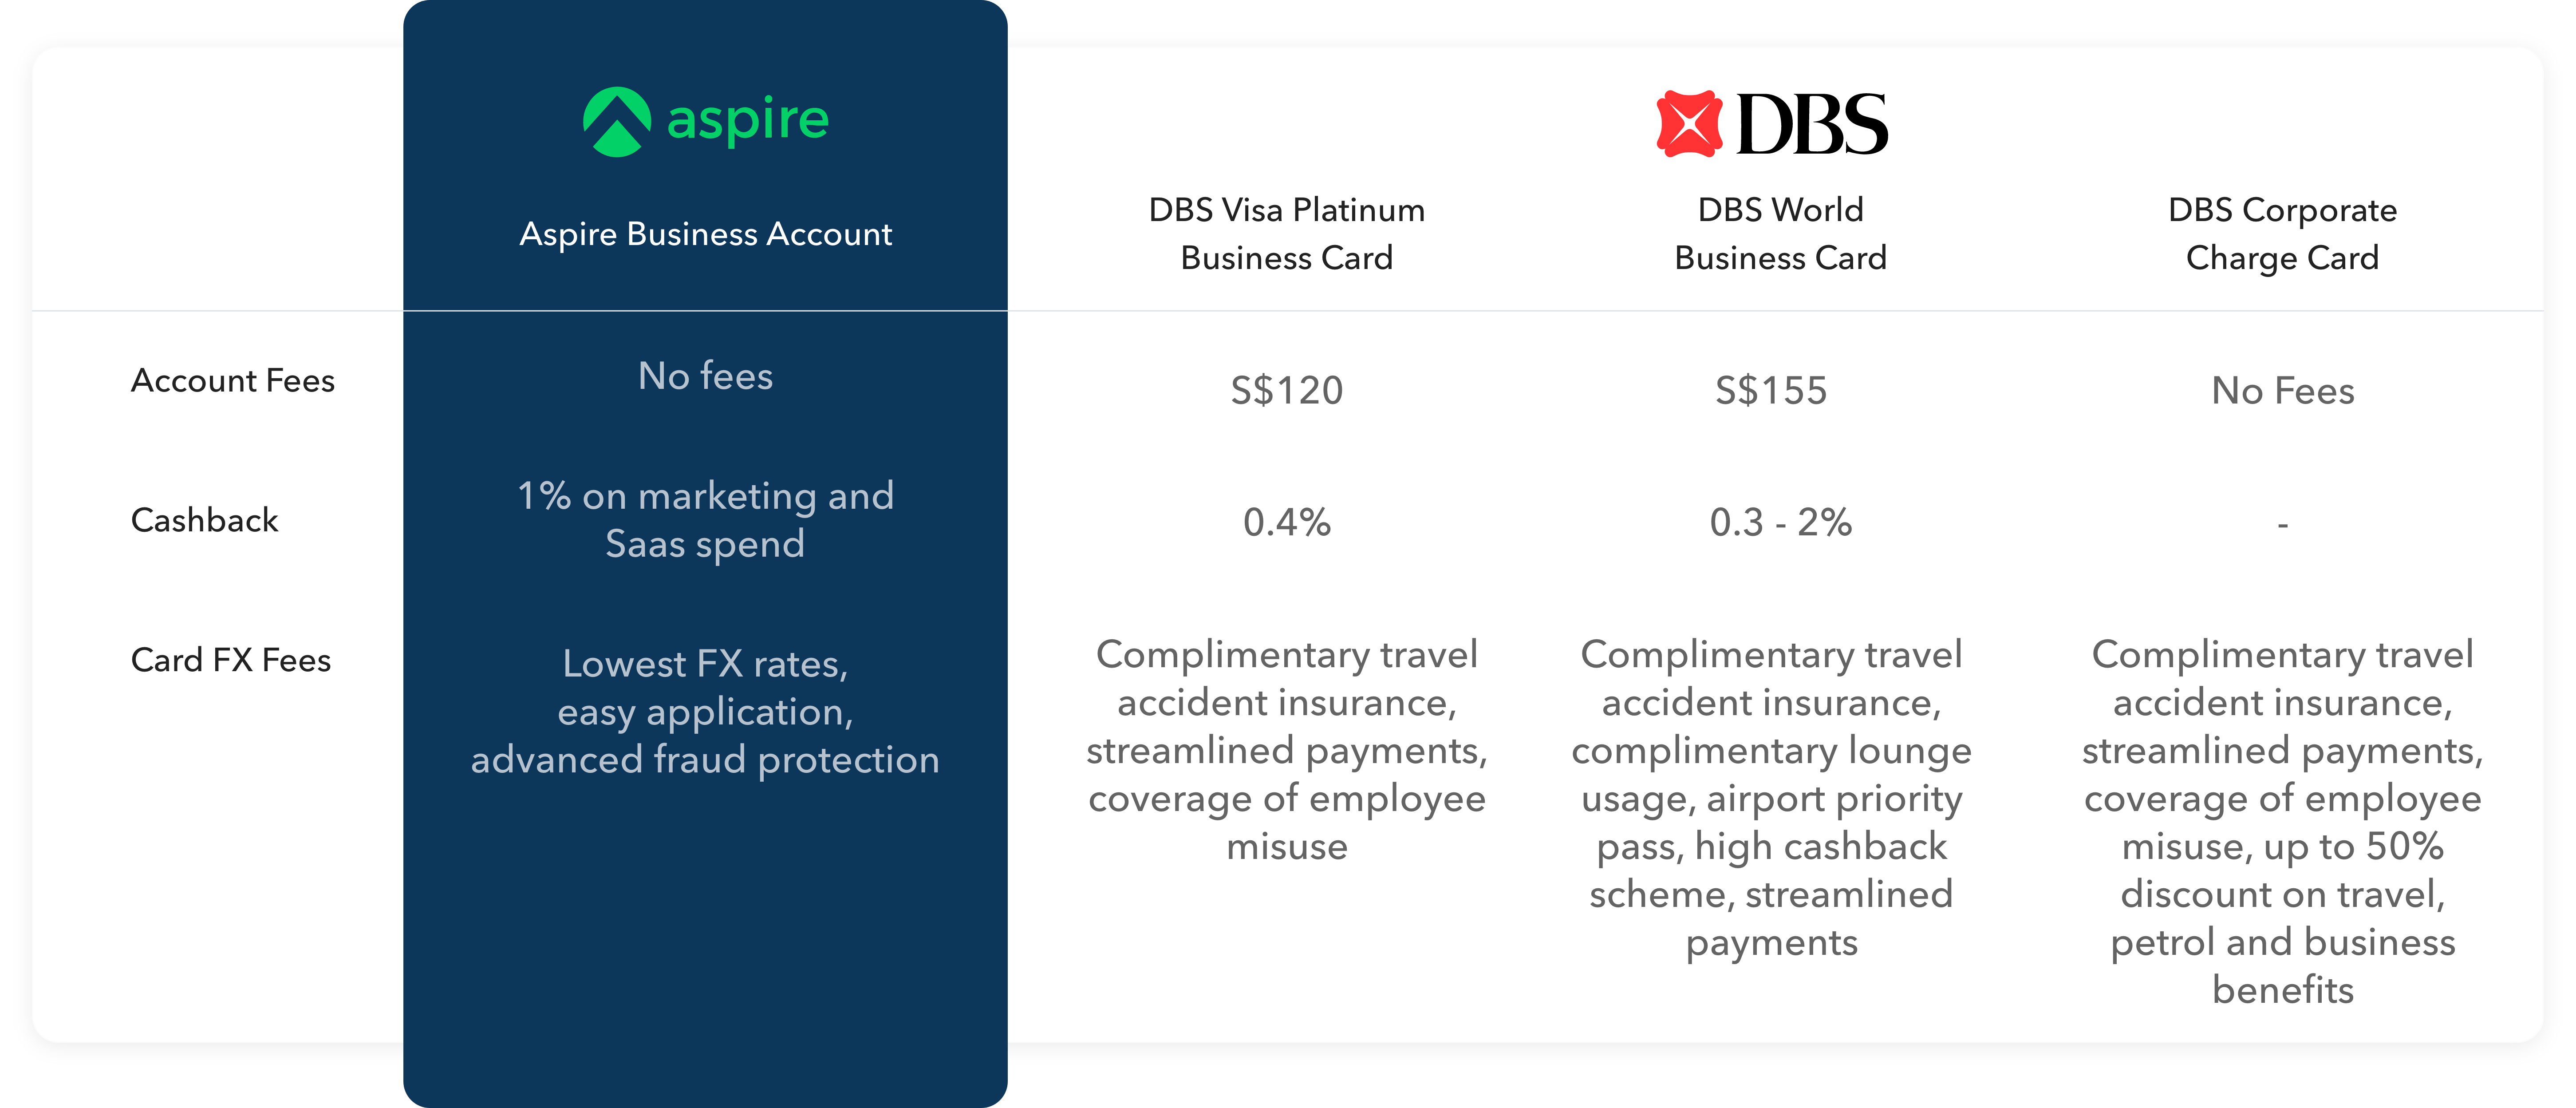 comparing the Aspire Corporate Card with DBS' corporate cards